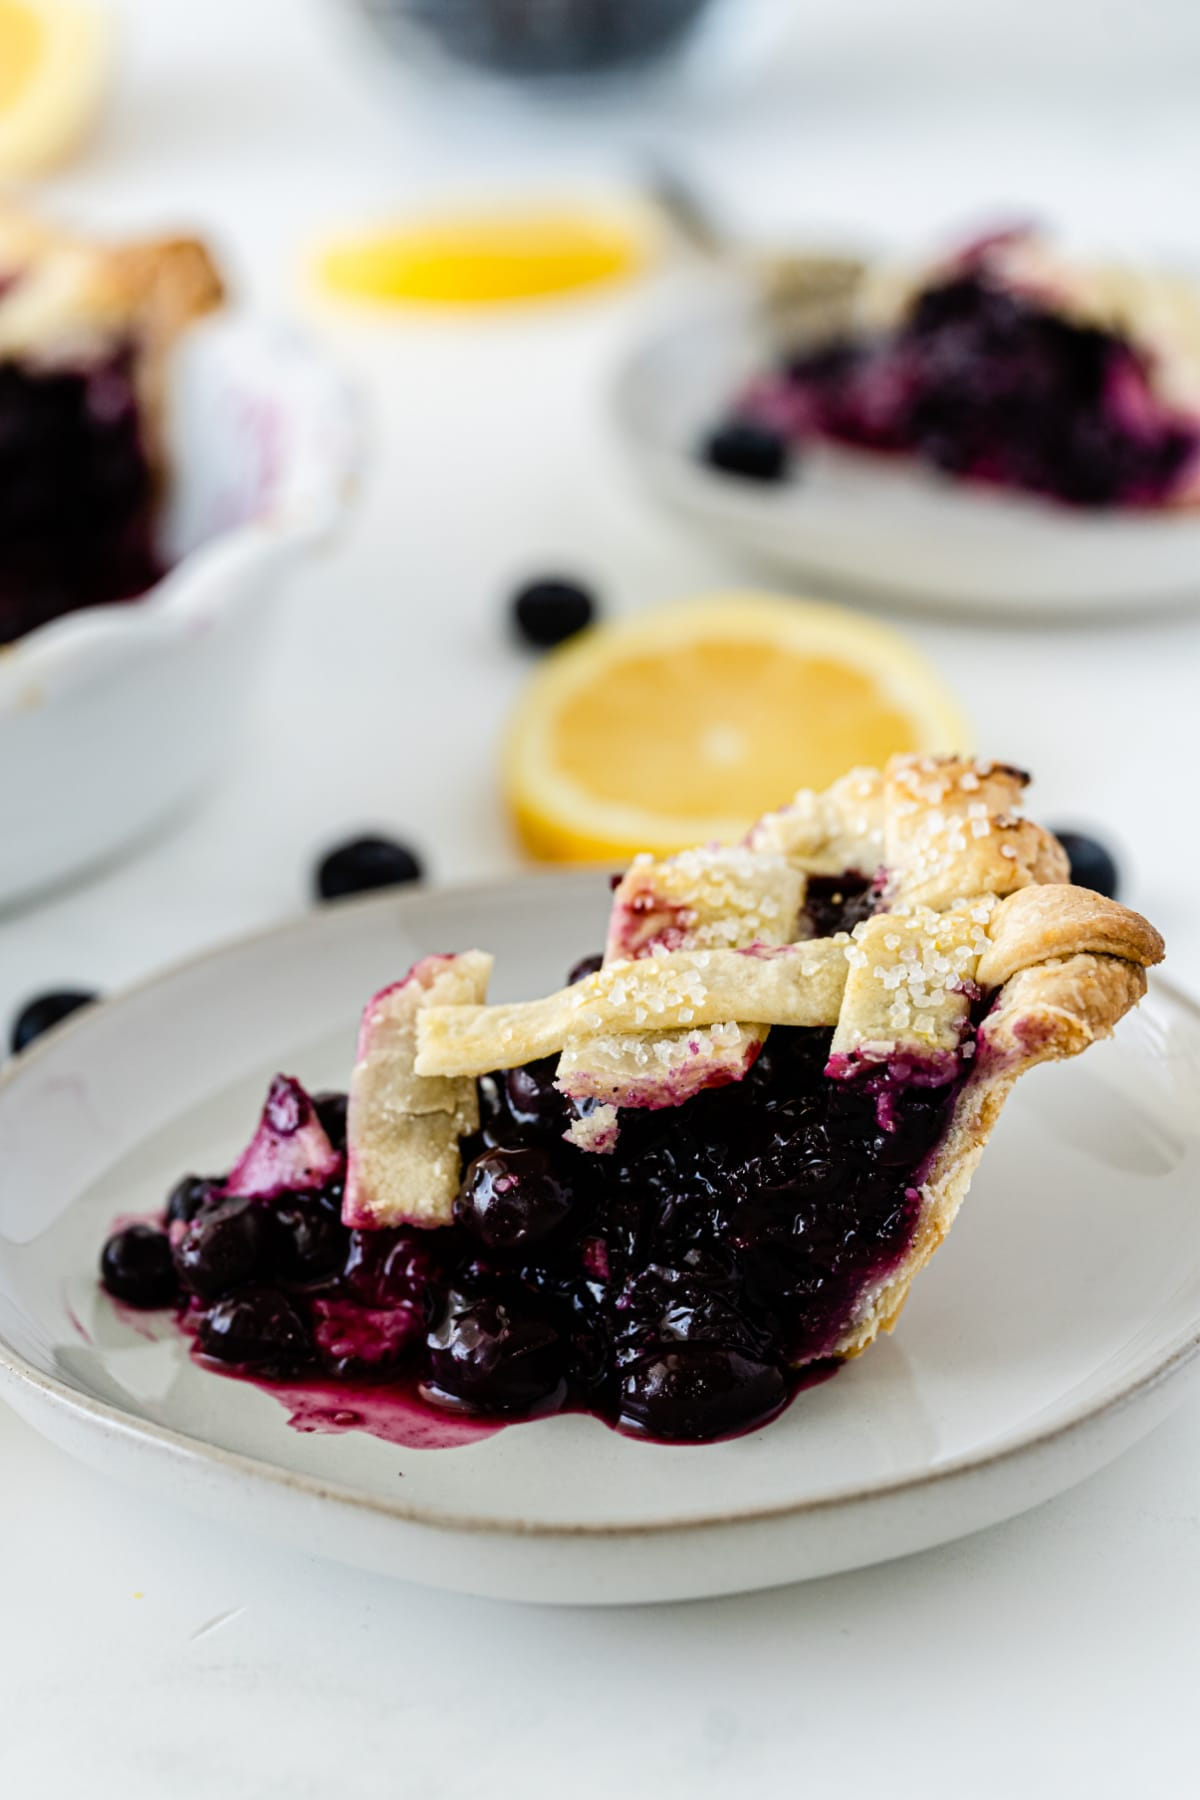 Blueberry pie filling falling out of pie onto plate